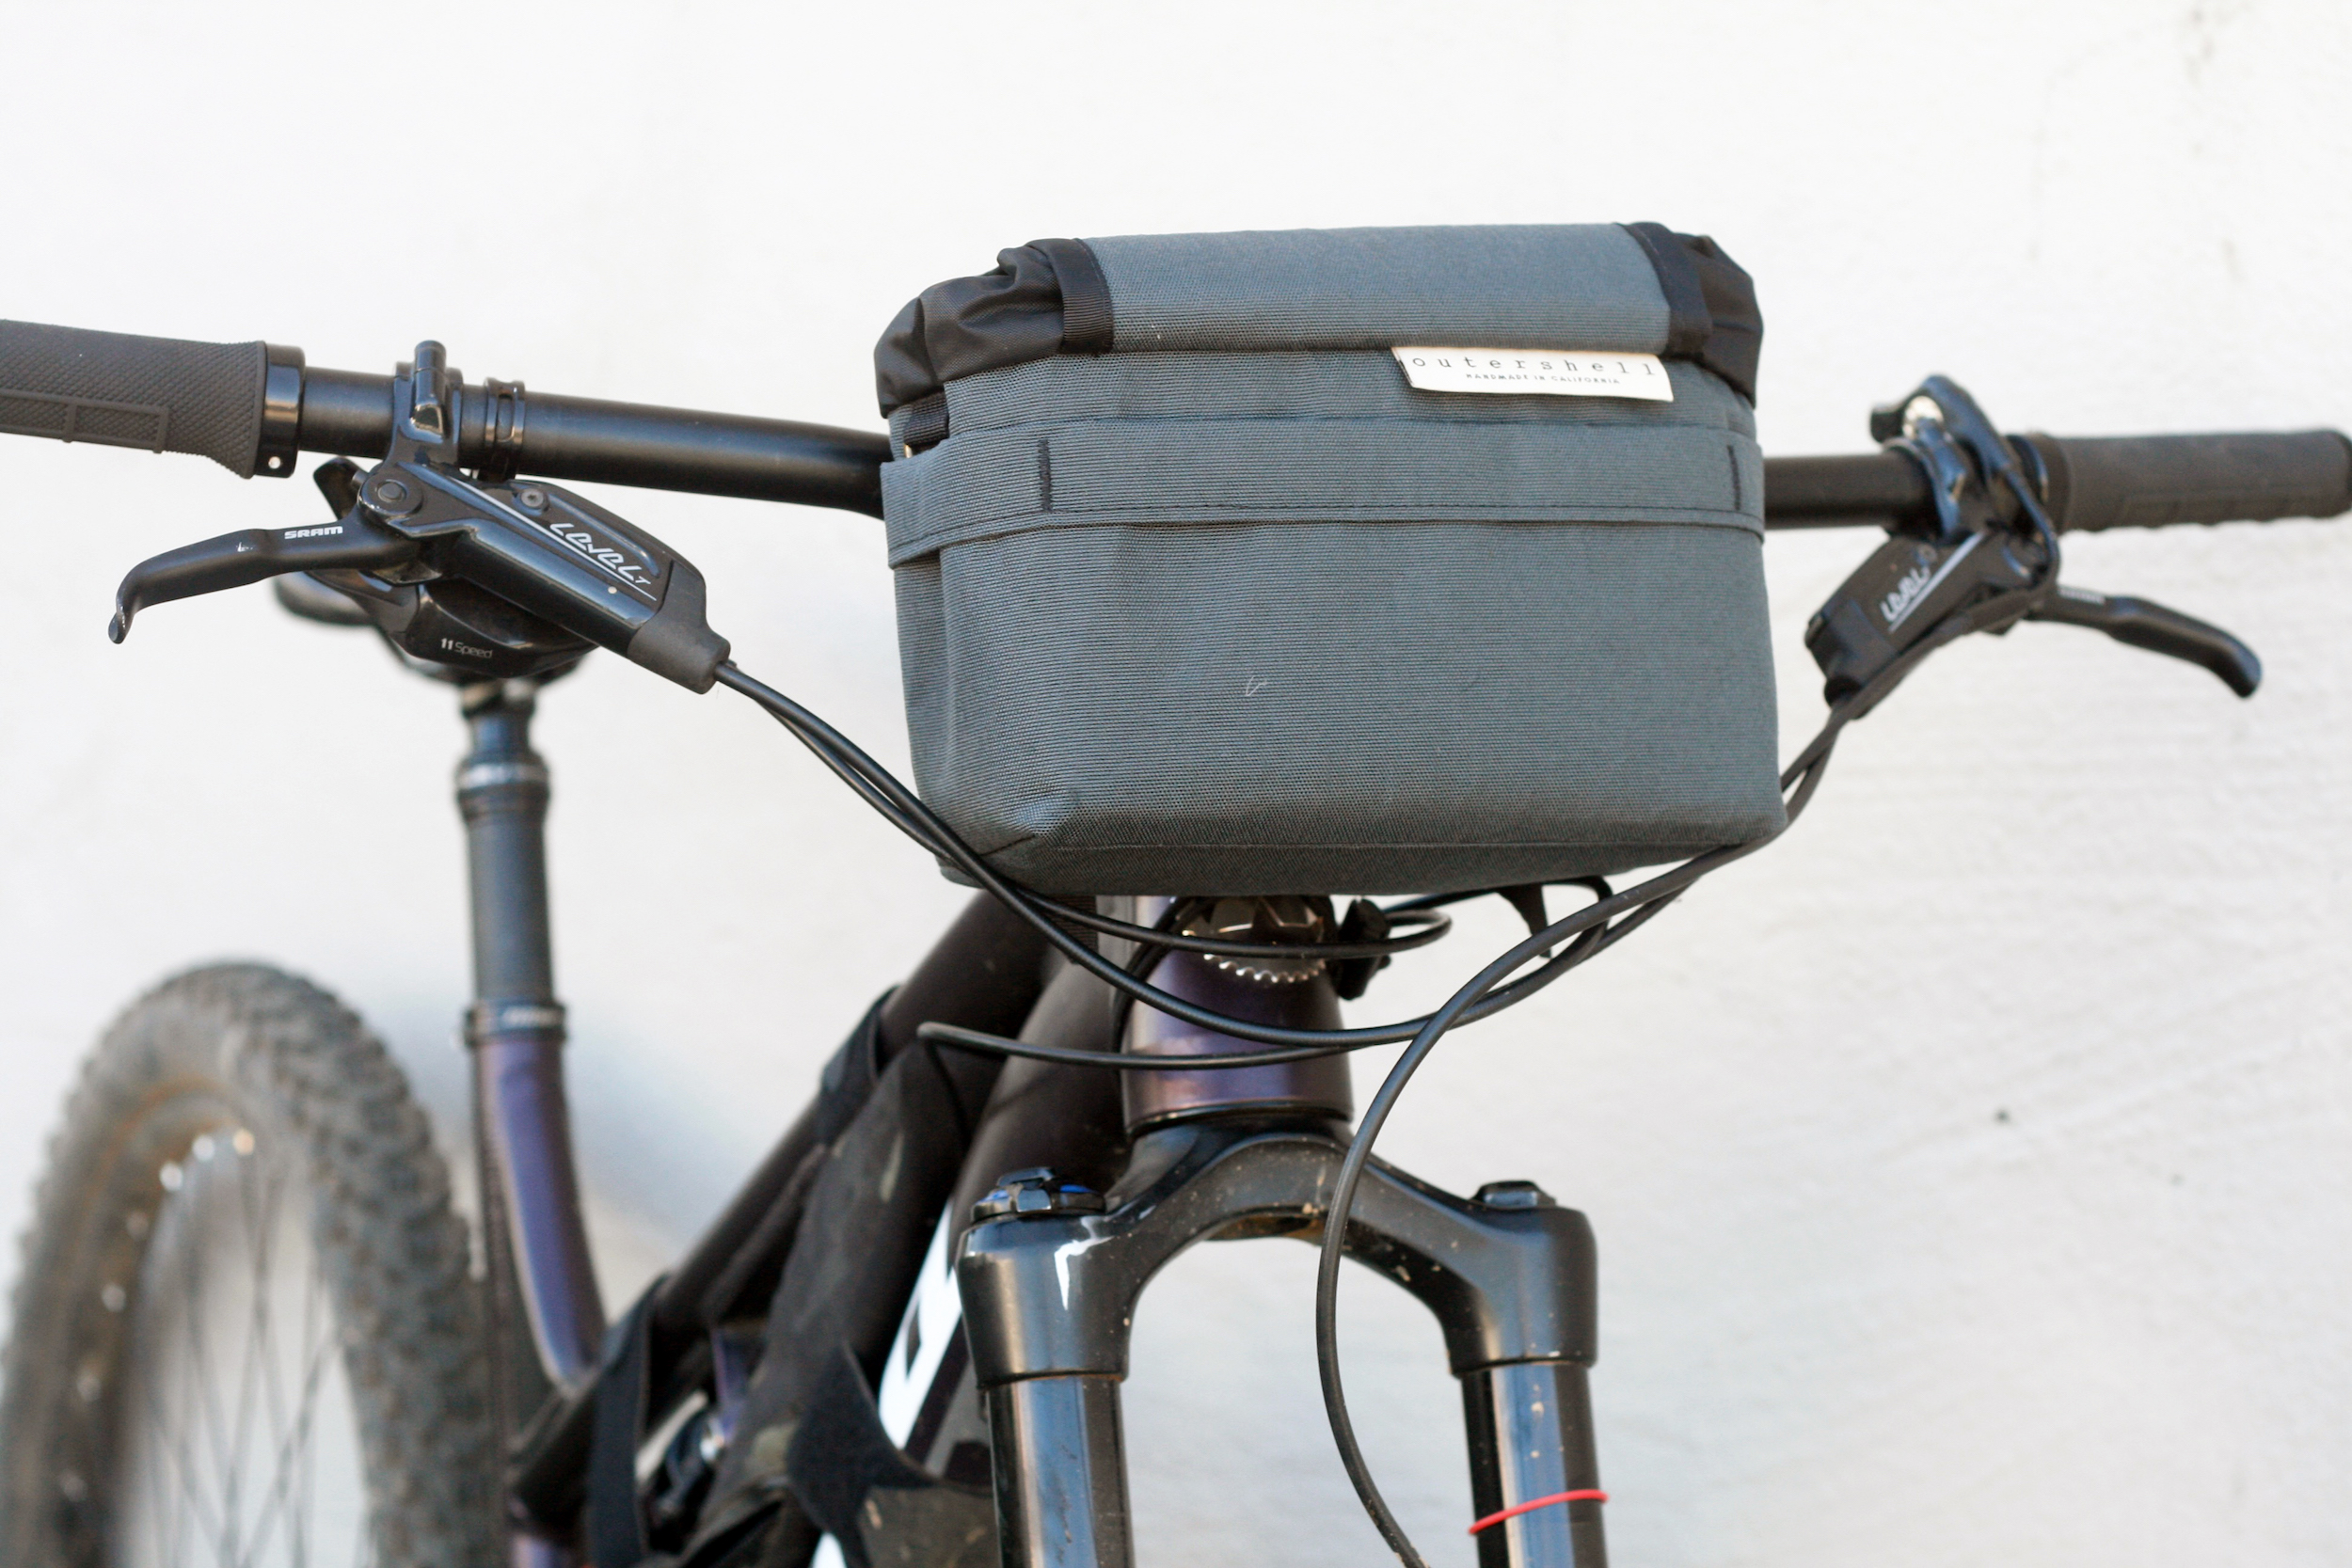 No spacers needed, Sram brake levers direct cables under the bag